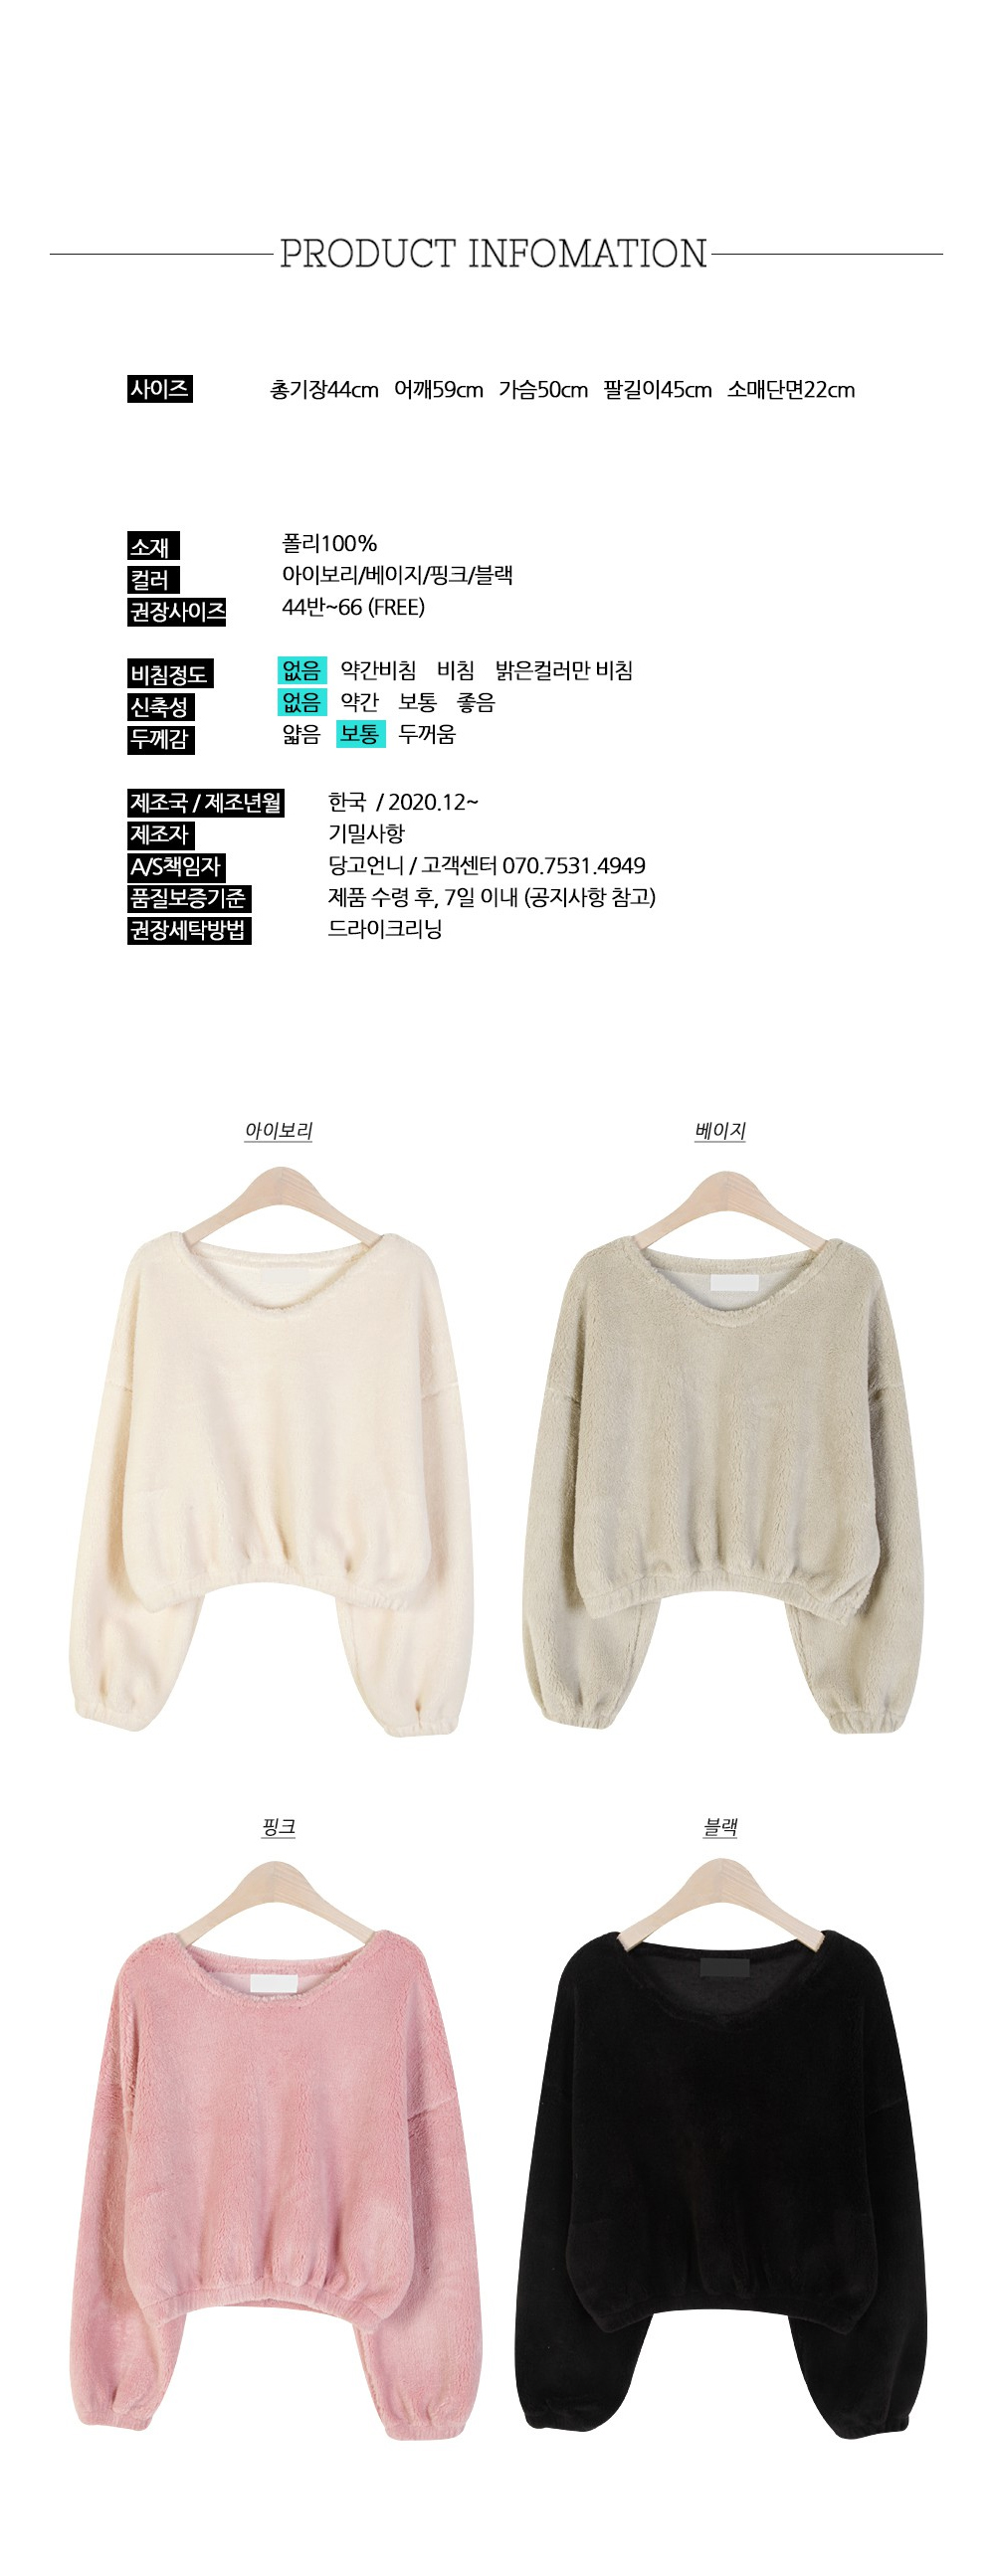 long sleeved tee product image-S1L3